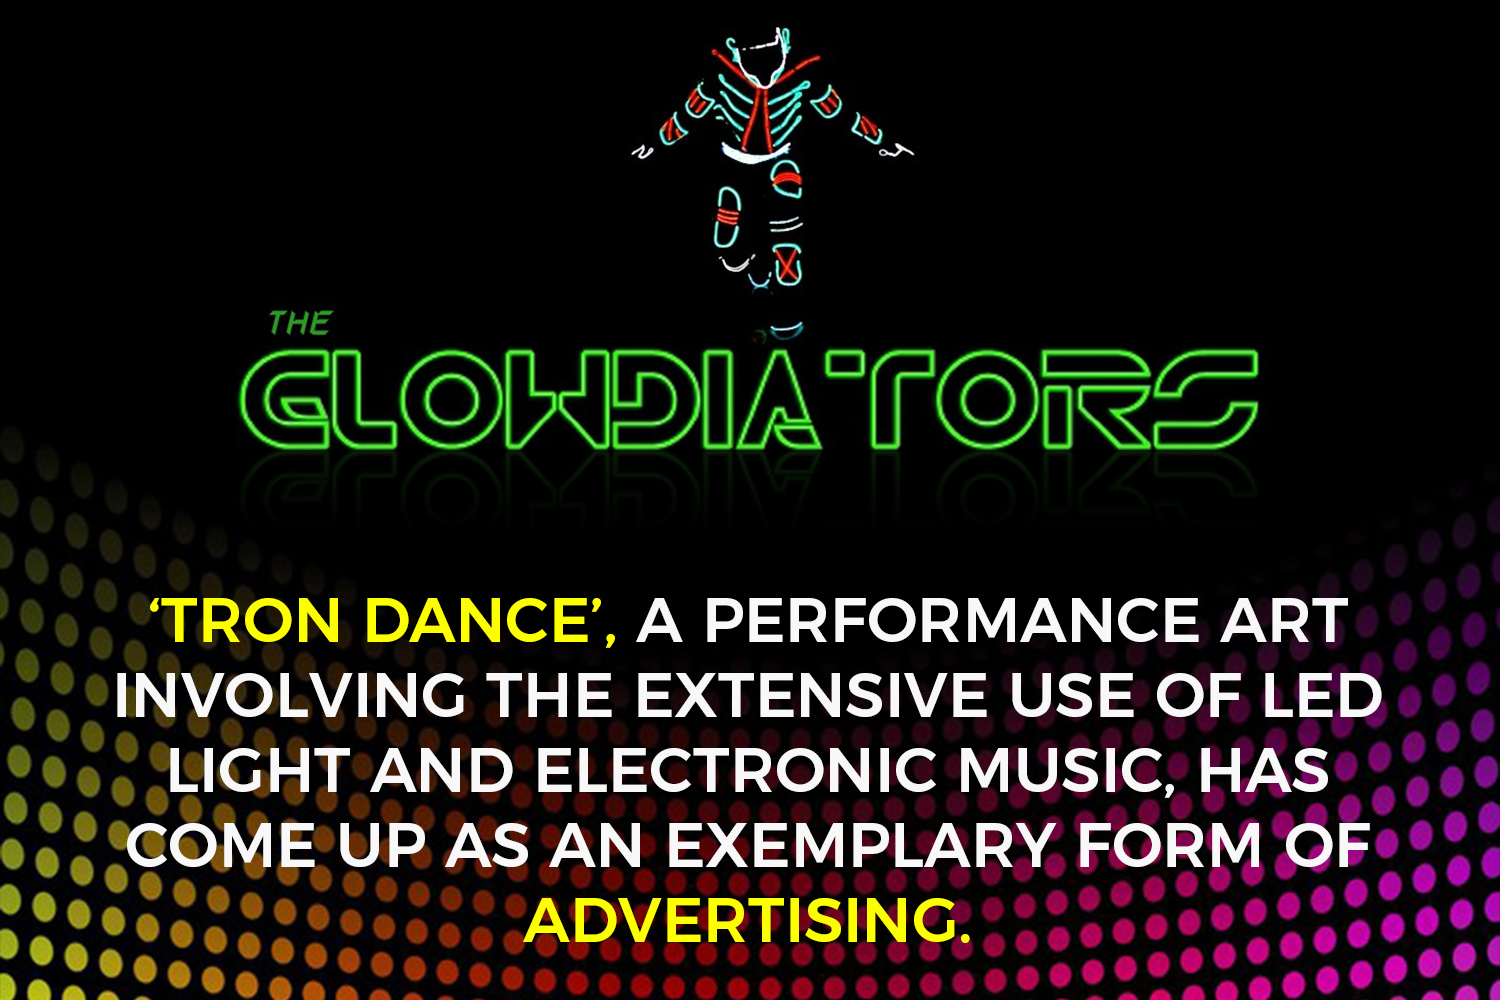 tron dance the glowdiators performance art and advertising